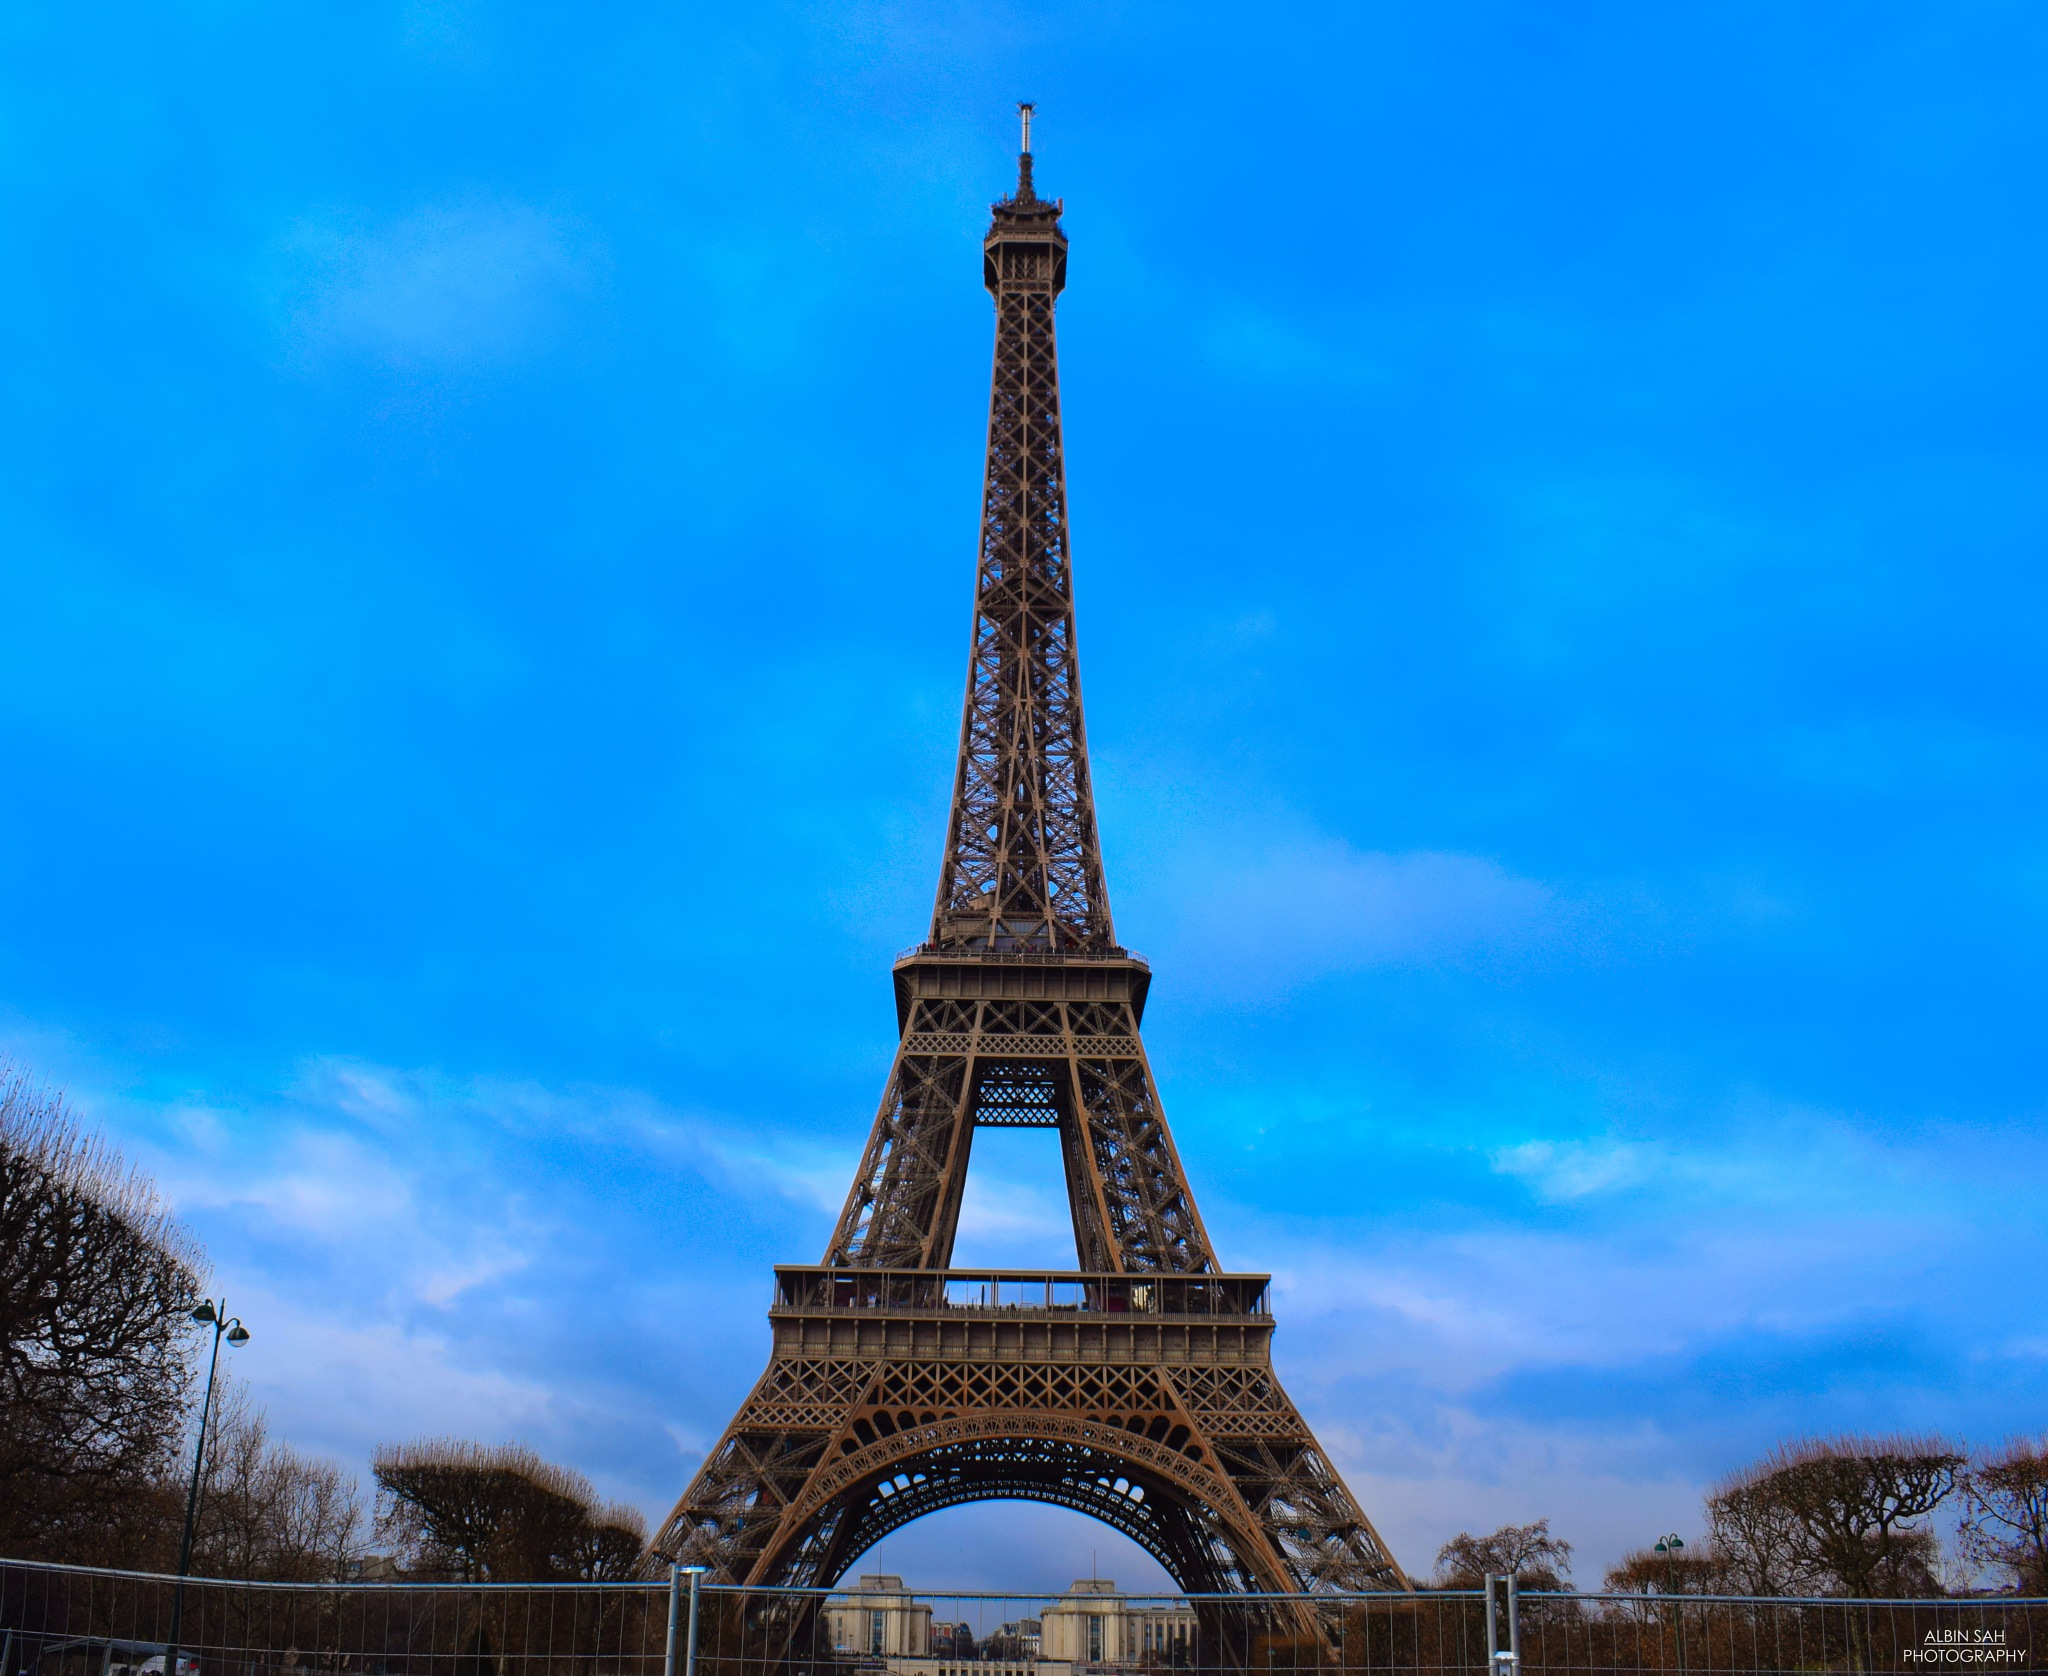 Eiffel Tower by albin~s